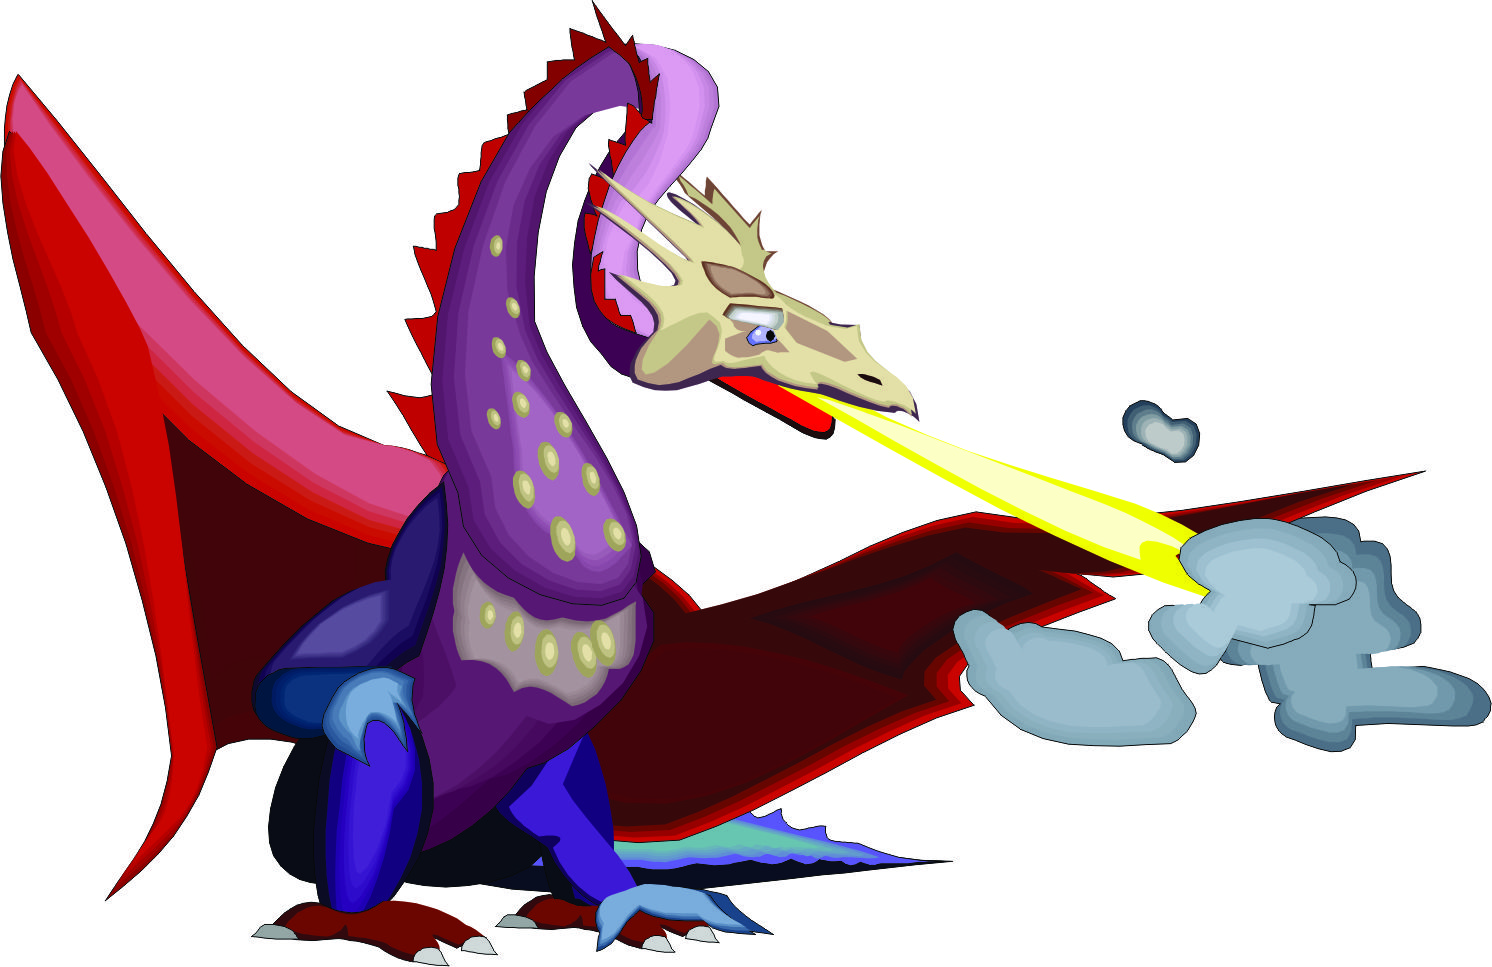 Pictures of Cartoon Dragons Breathing Fire Fire · Cartoon Dragons